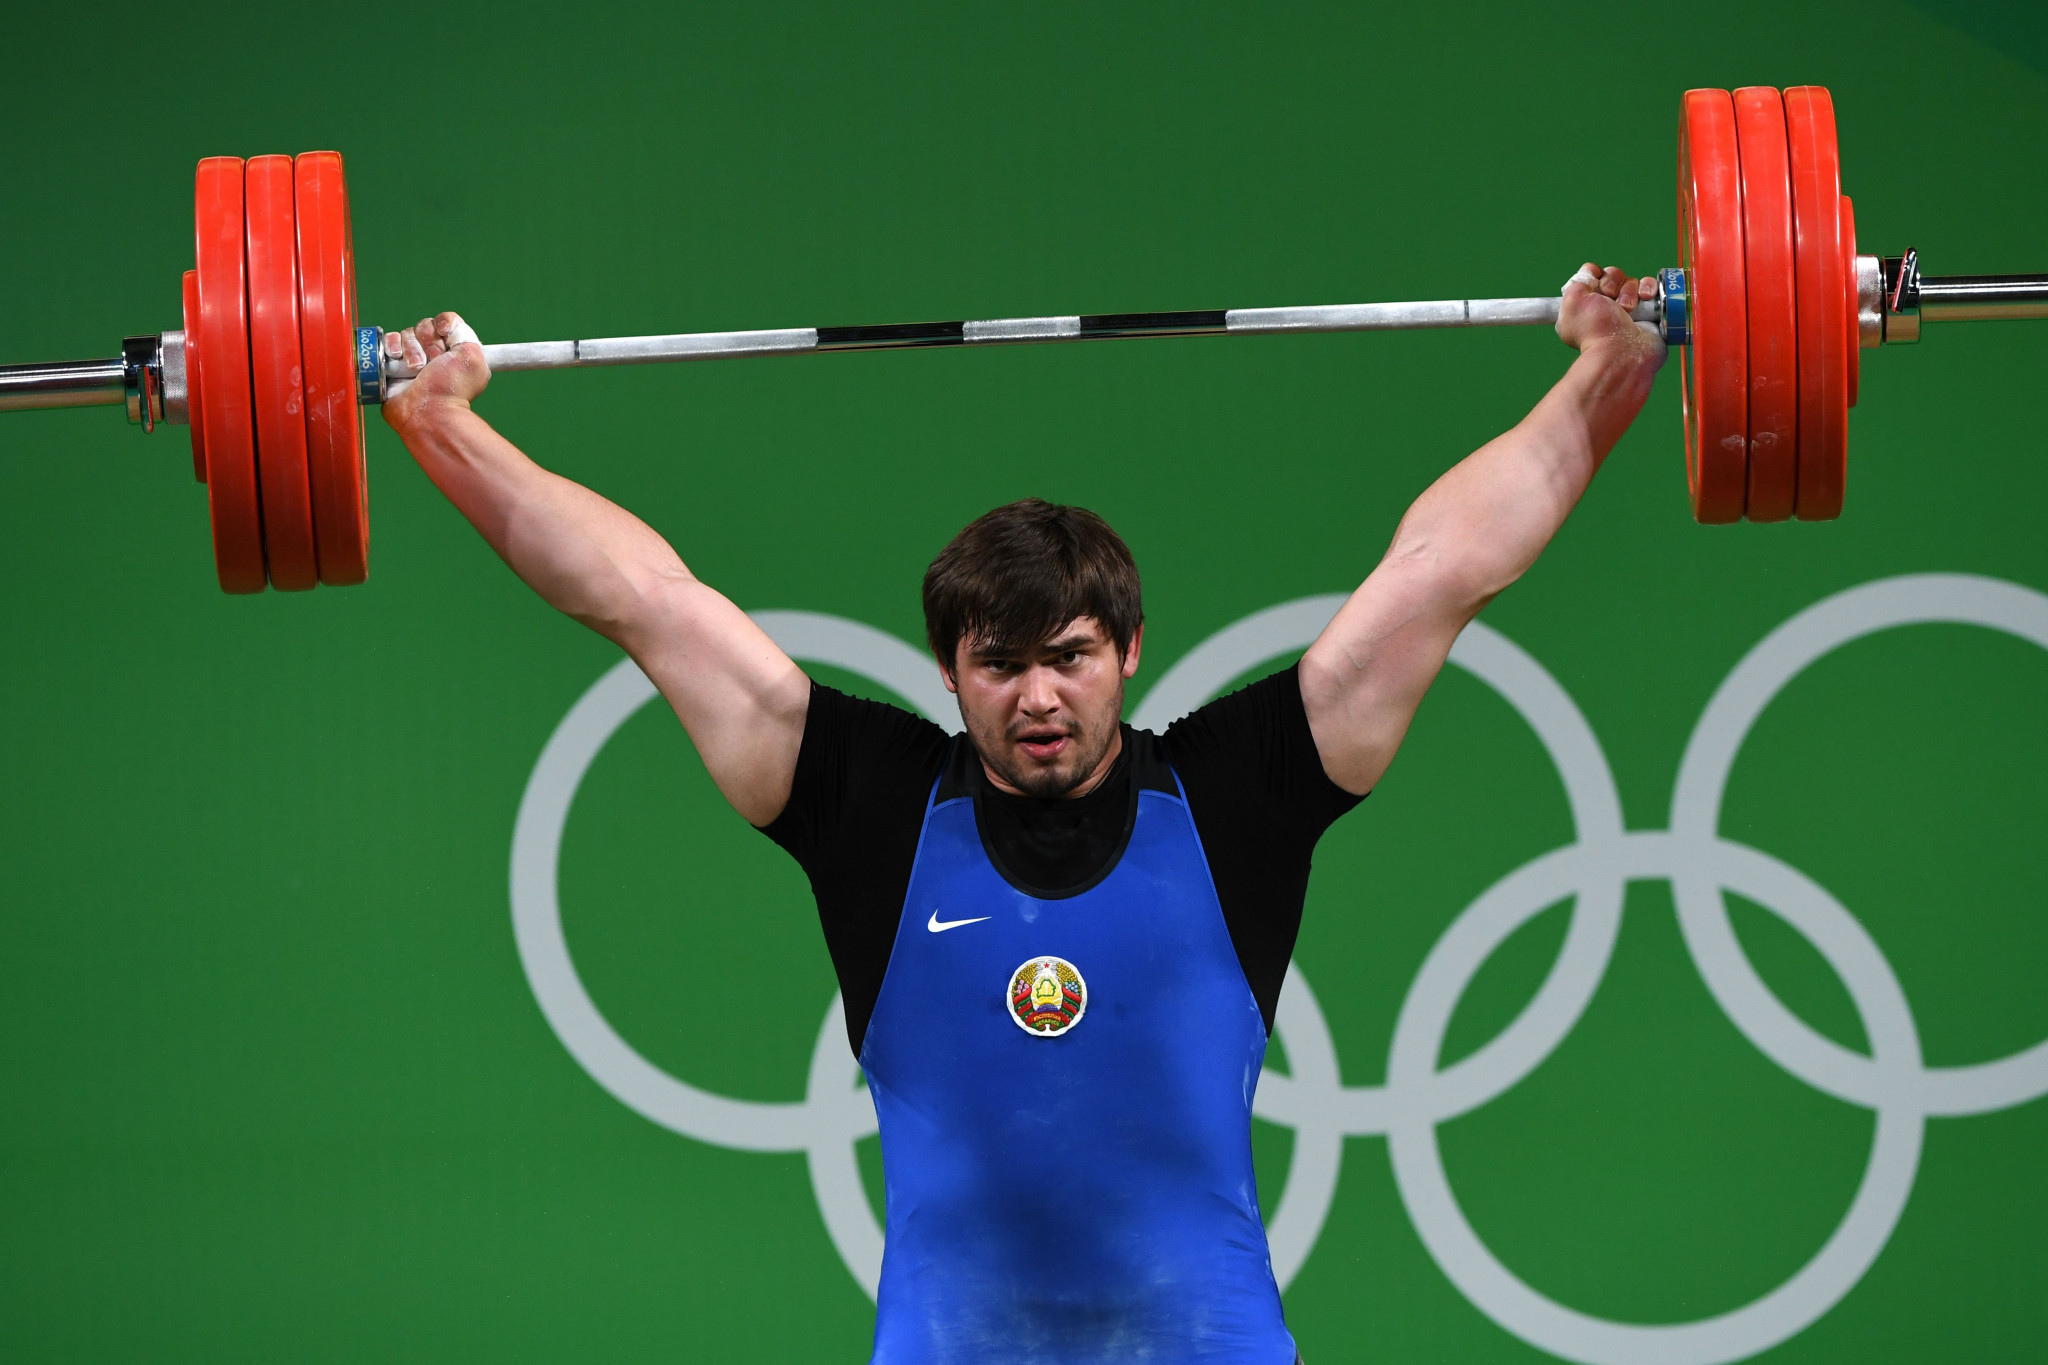 Belarusian weightlifter Aliksei Mzhachyk will look to qualify for his second Olympics ©Getty Images